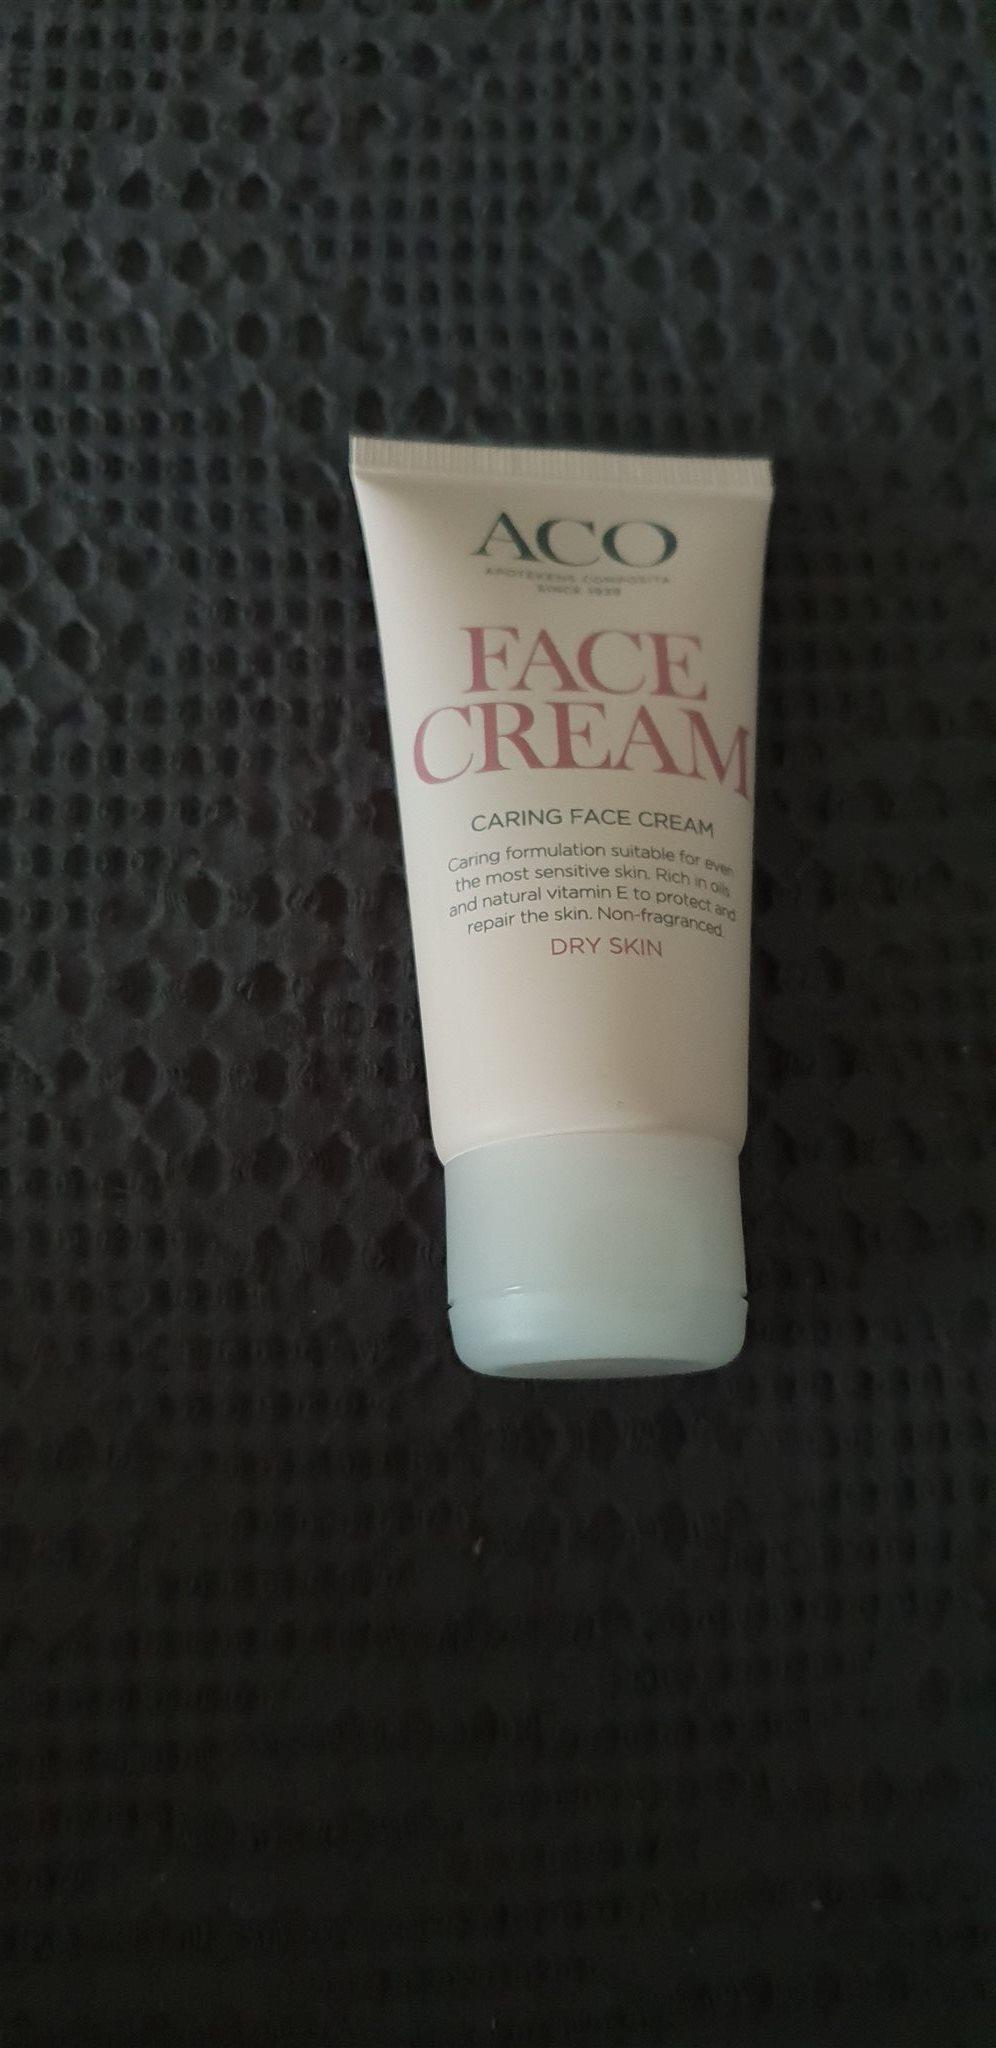 aco face caring face cream